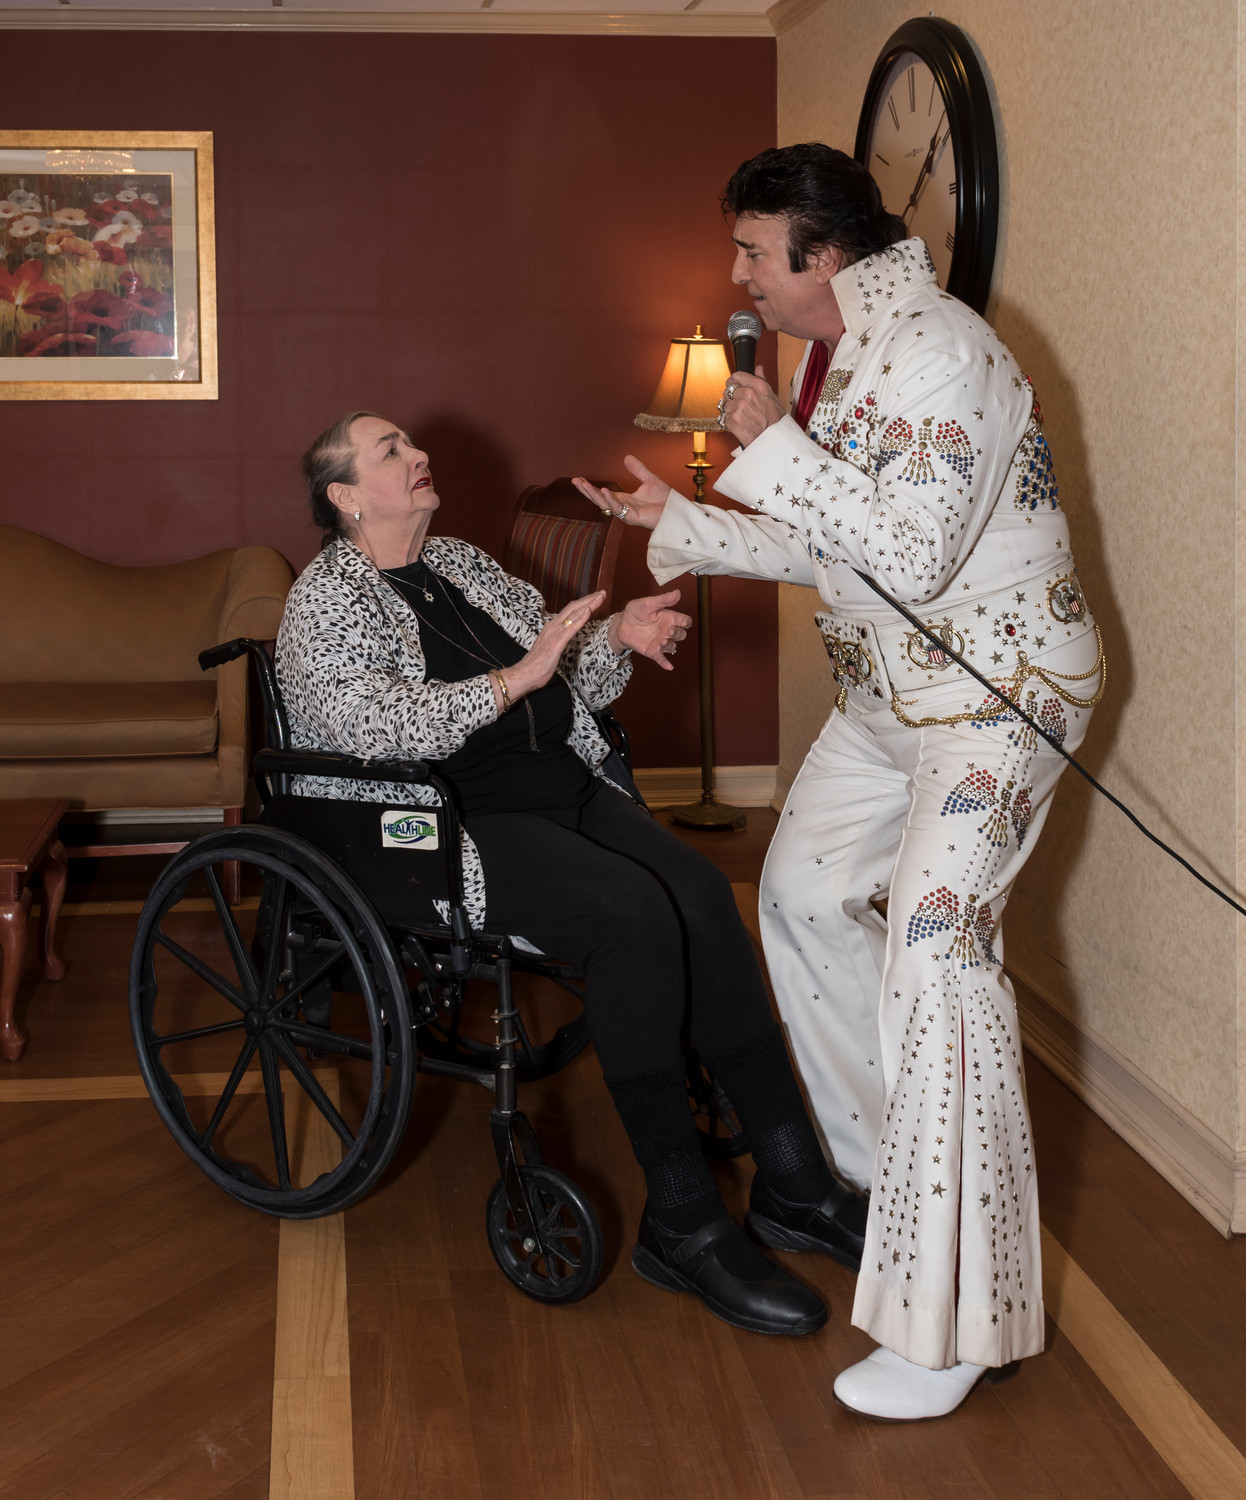 Elvis serenades Paula Nass at his 83rd birthday celebration at the Regency.